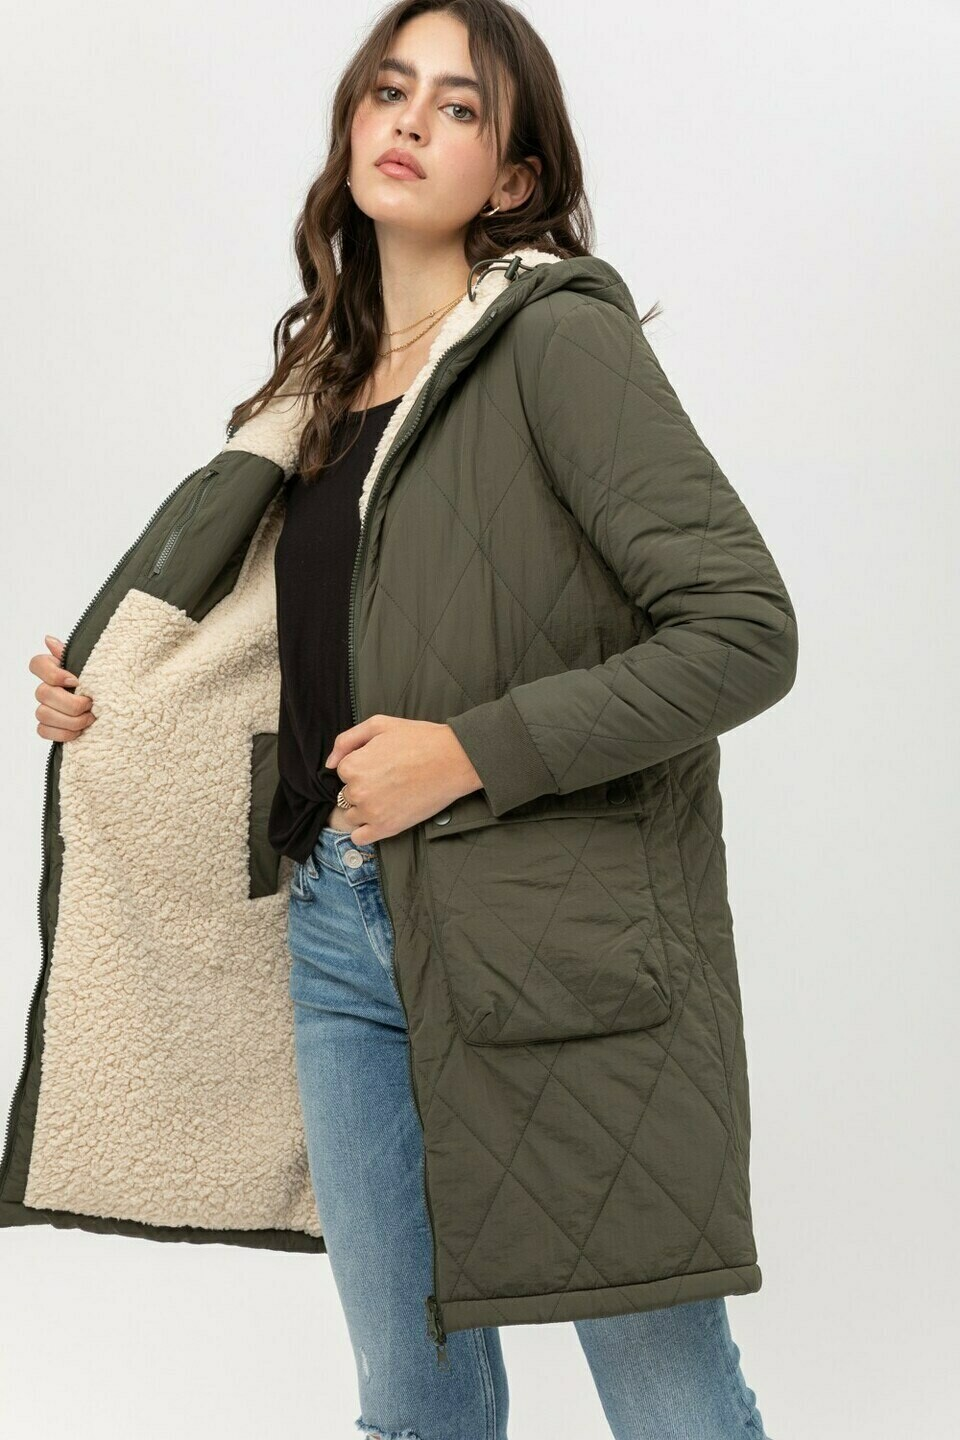 Reversible Olive/Nat Coat